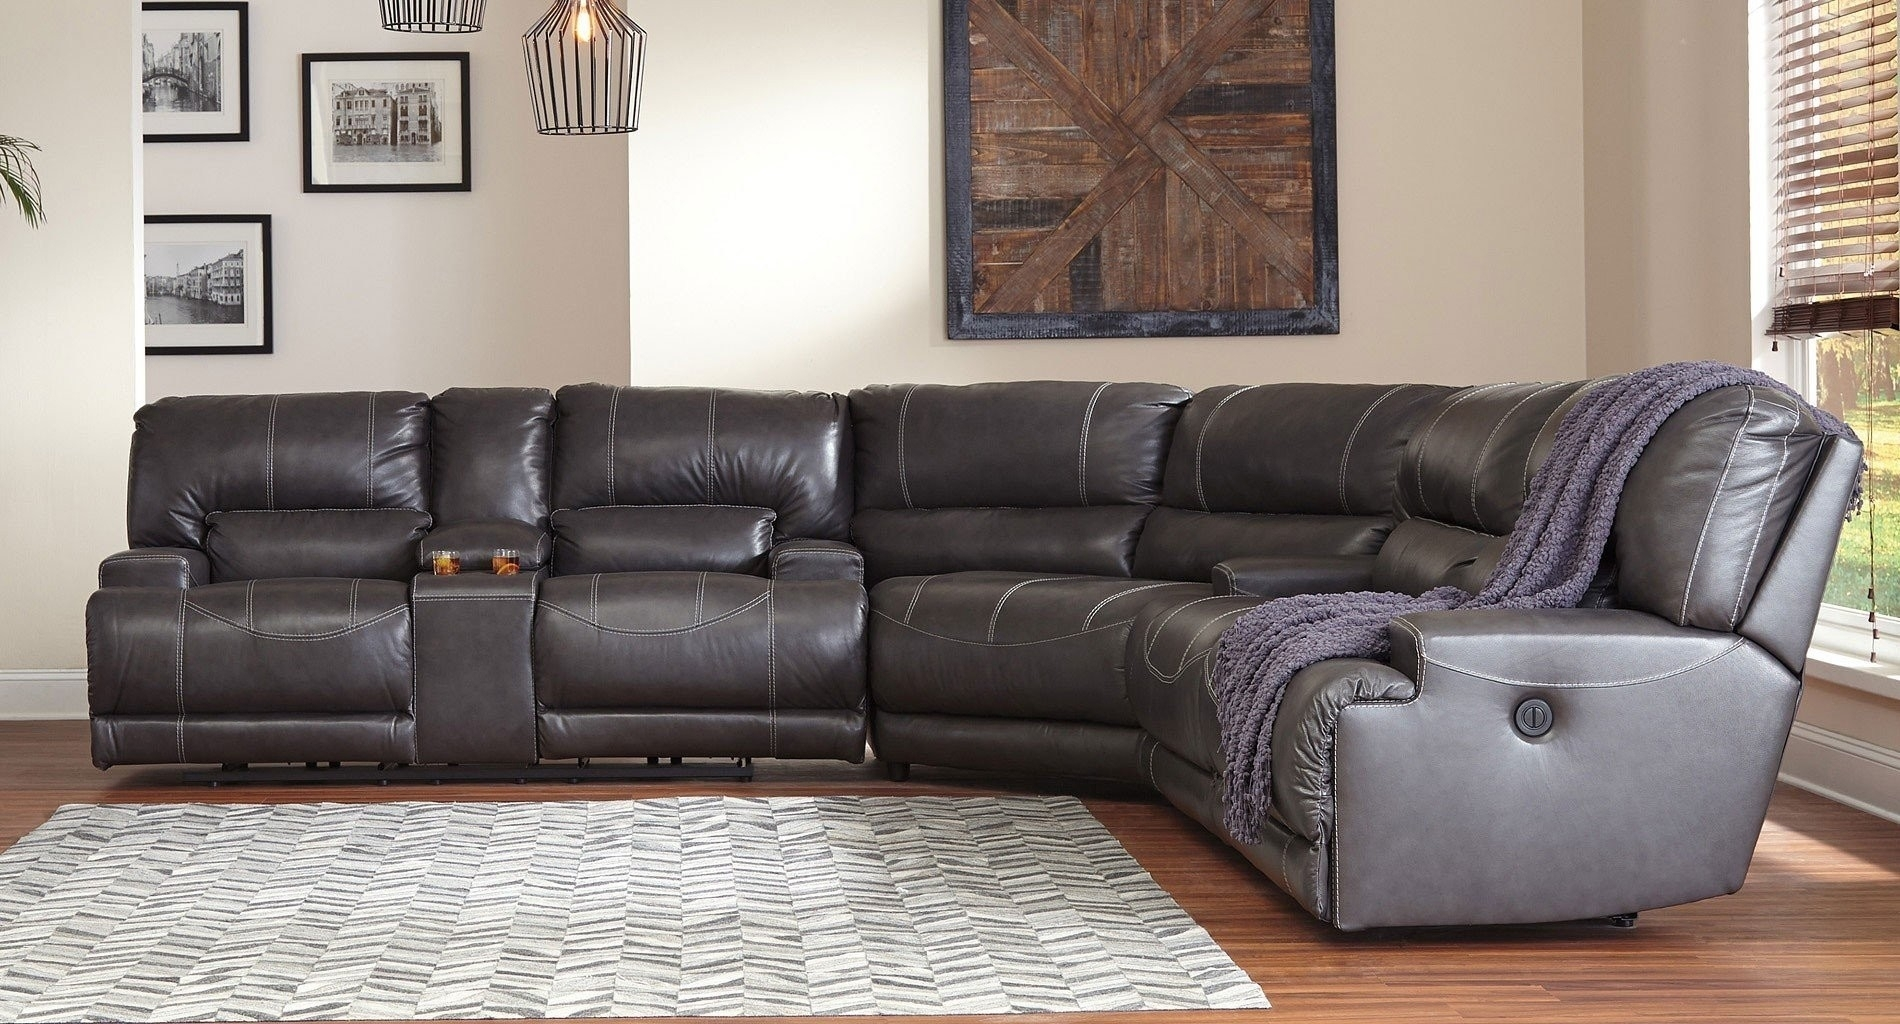 Gray Reclining Sectional Denali Light Grey 6 Piece W 2 Power Within Denali Light Grey 6 Piece Reclining Sectionals With 2 Power Headrests (Image 12 of 25)